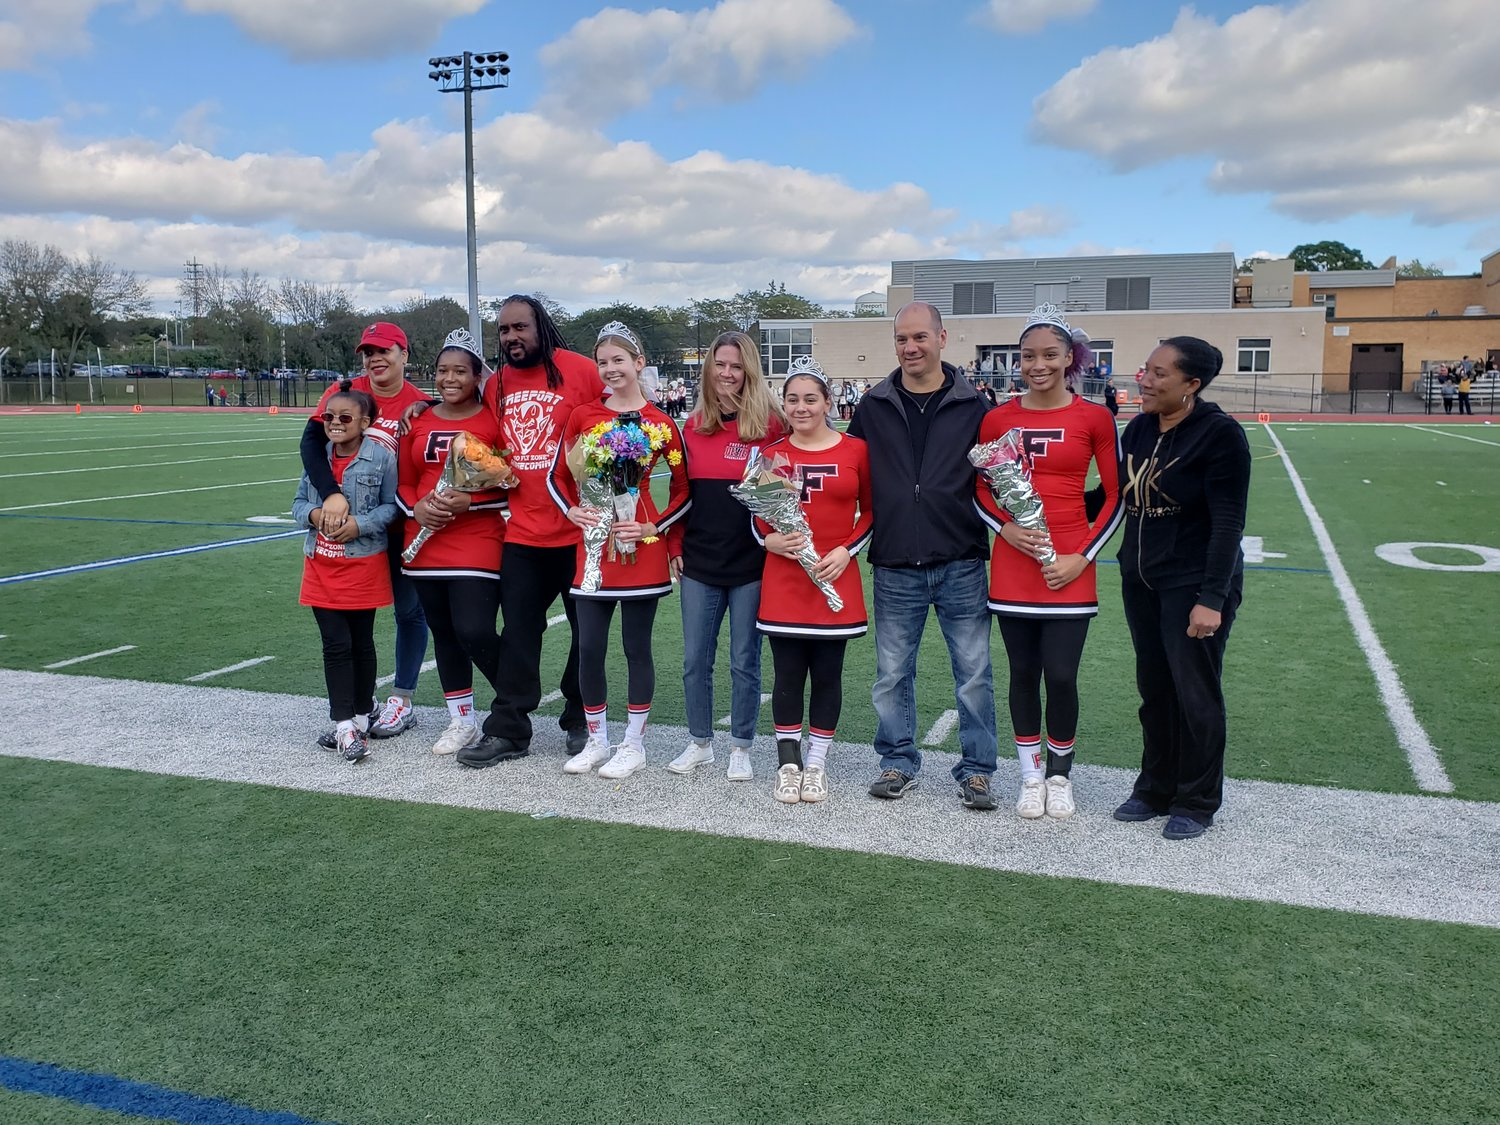 At Halftime of last Saturday's Homecoming win over East Meadow, four senior cheerleaders were recognized, and stood with family members.